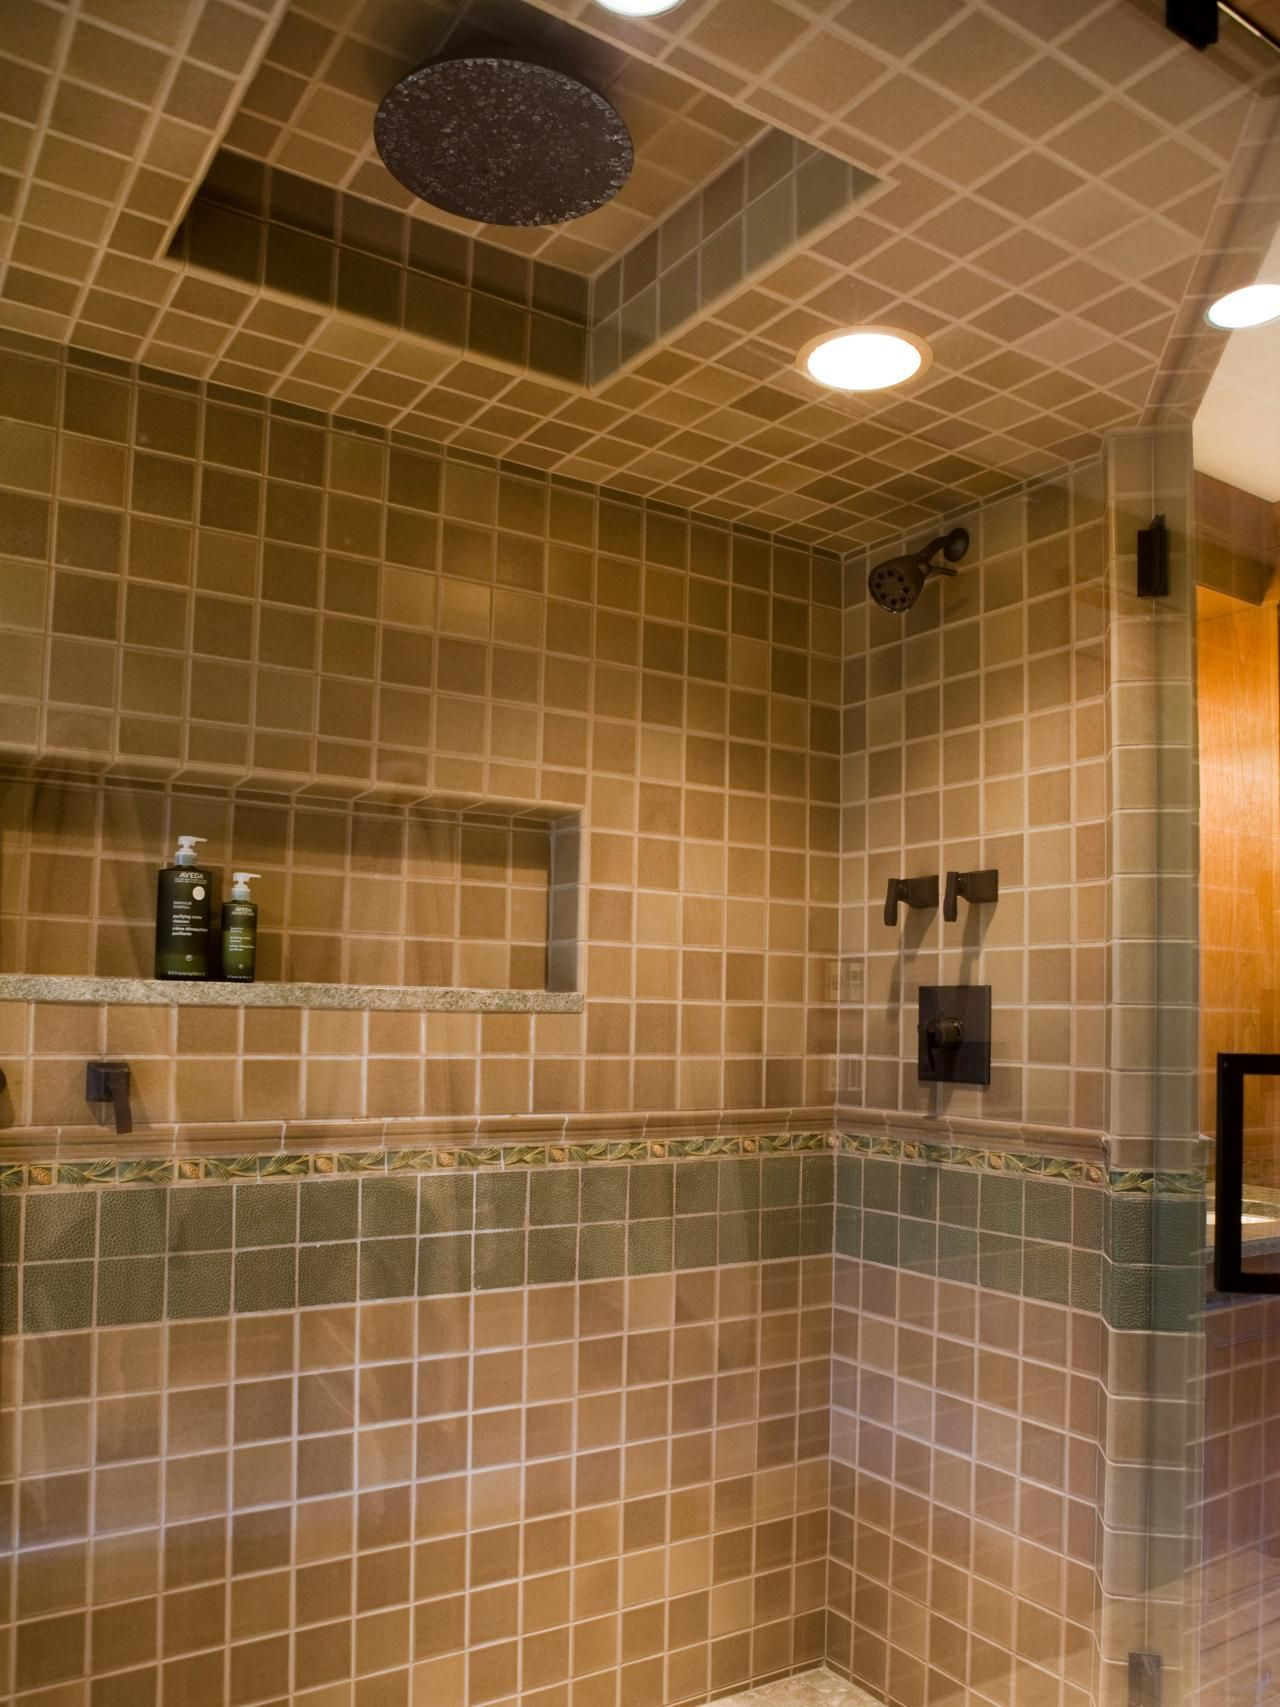 How To Clean Grout In Shower With Environmentally Friendly - How to clean bathroom tiles home remedies